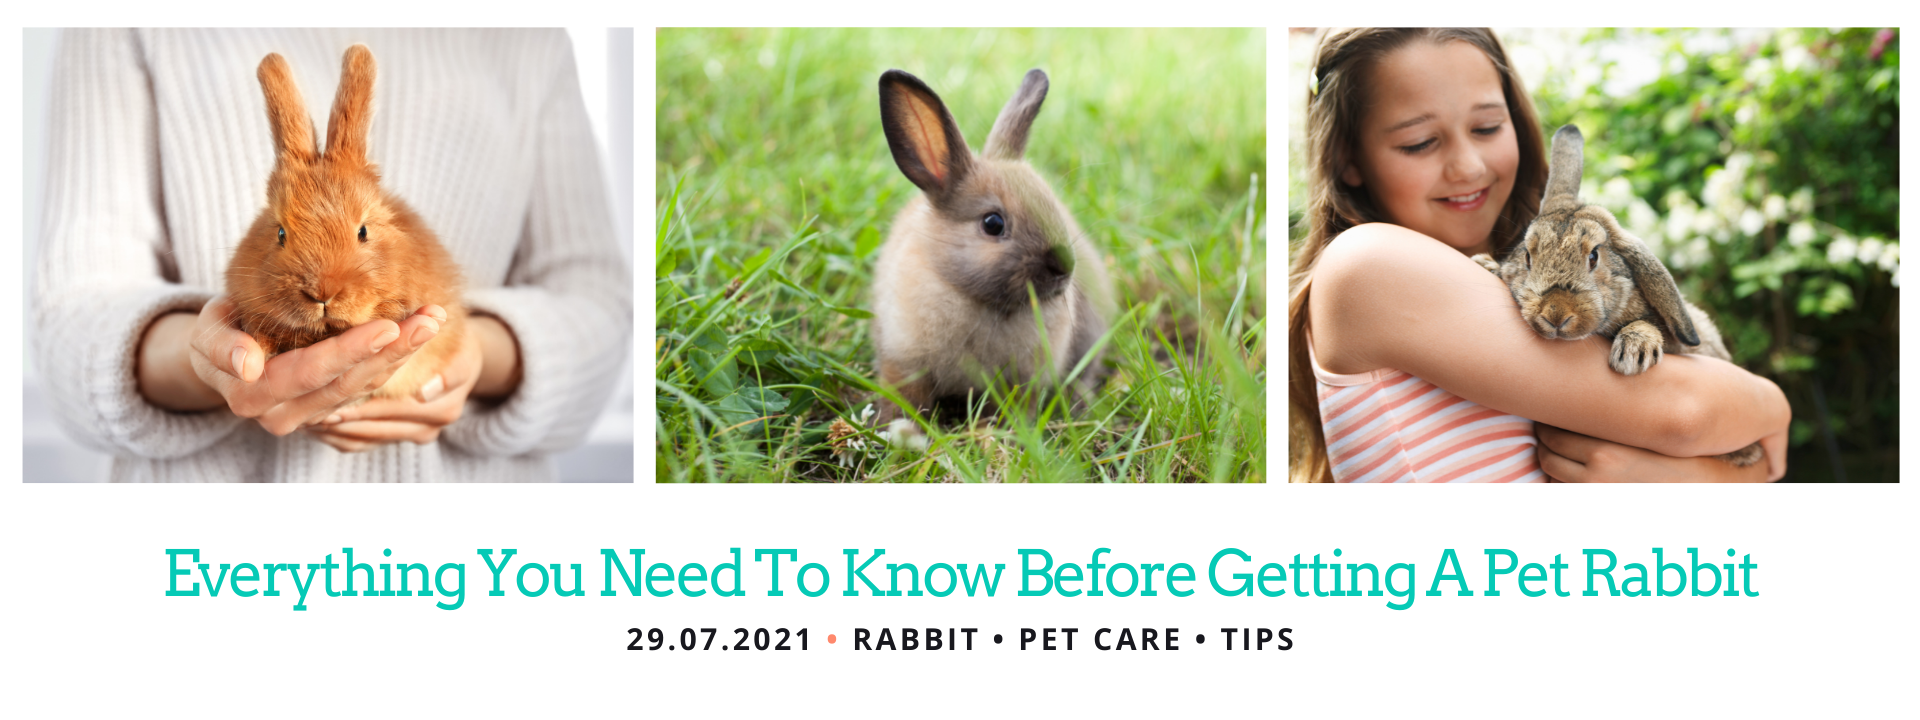 Before getting a Pet Rabbit